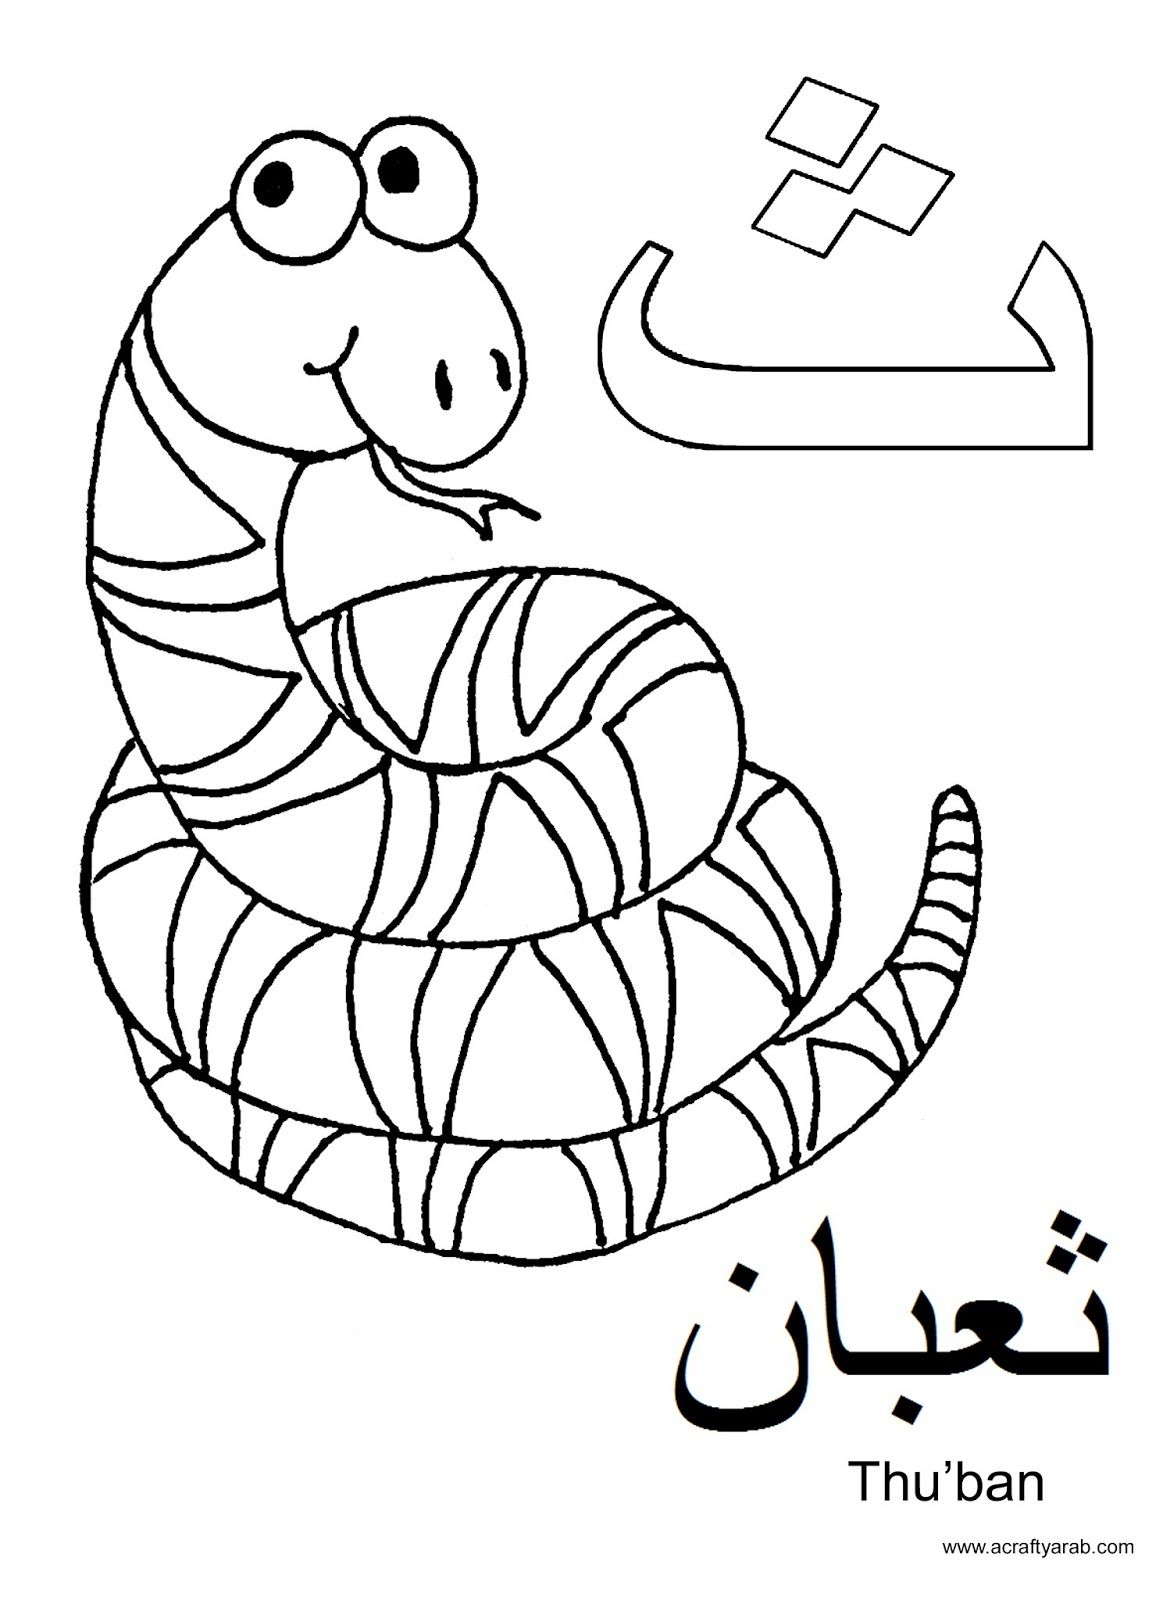 A crafty arab arabic alphabet coloring pages tha is for for Arabic coloring pages